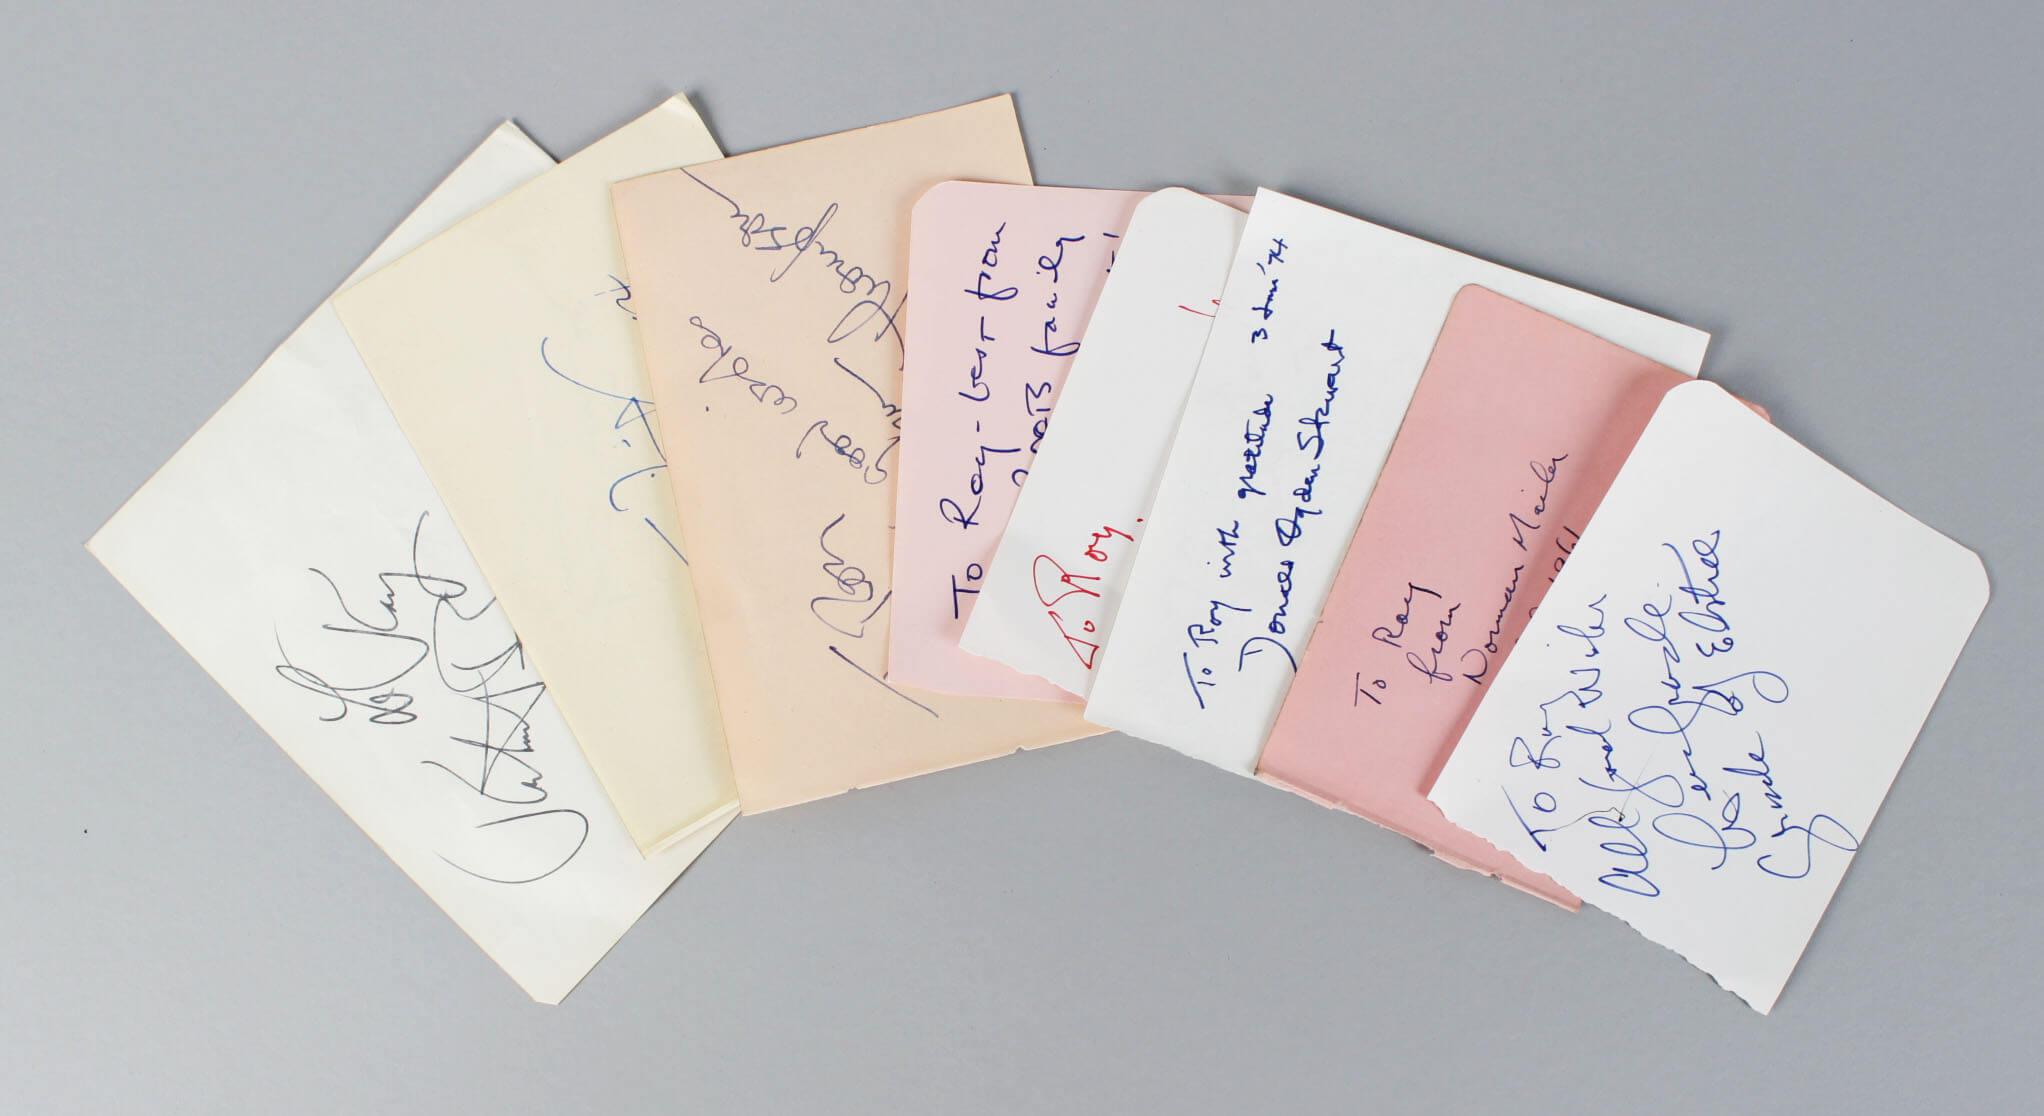 Authors & Play Writers Signed Lot (9) Vintage Album Page Cuts (JSA)56853_01